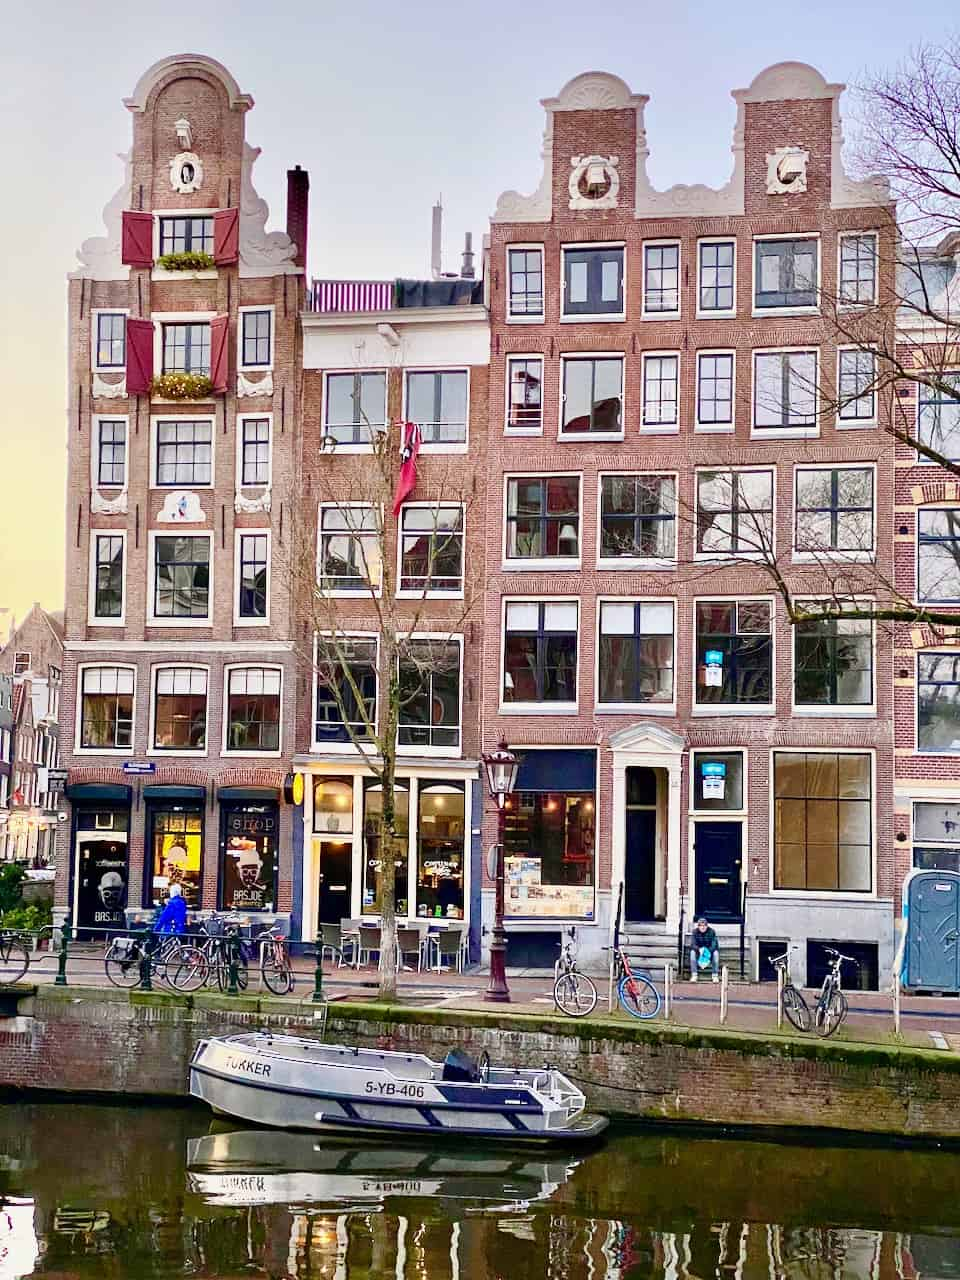 canal-houses-kloveniersburgwal-amsterdam-photo